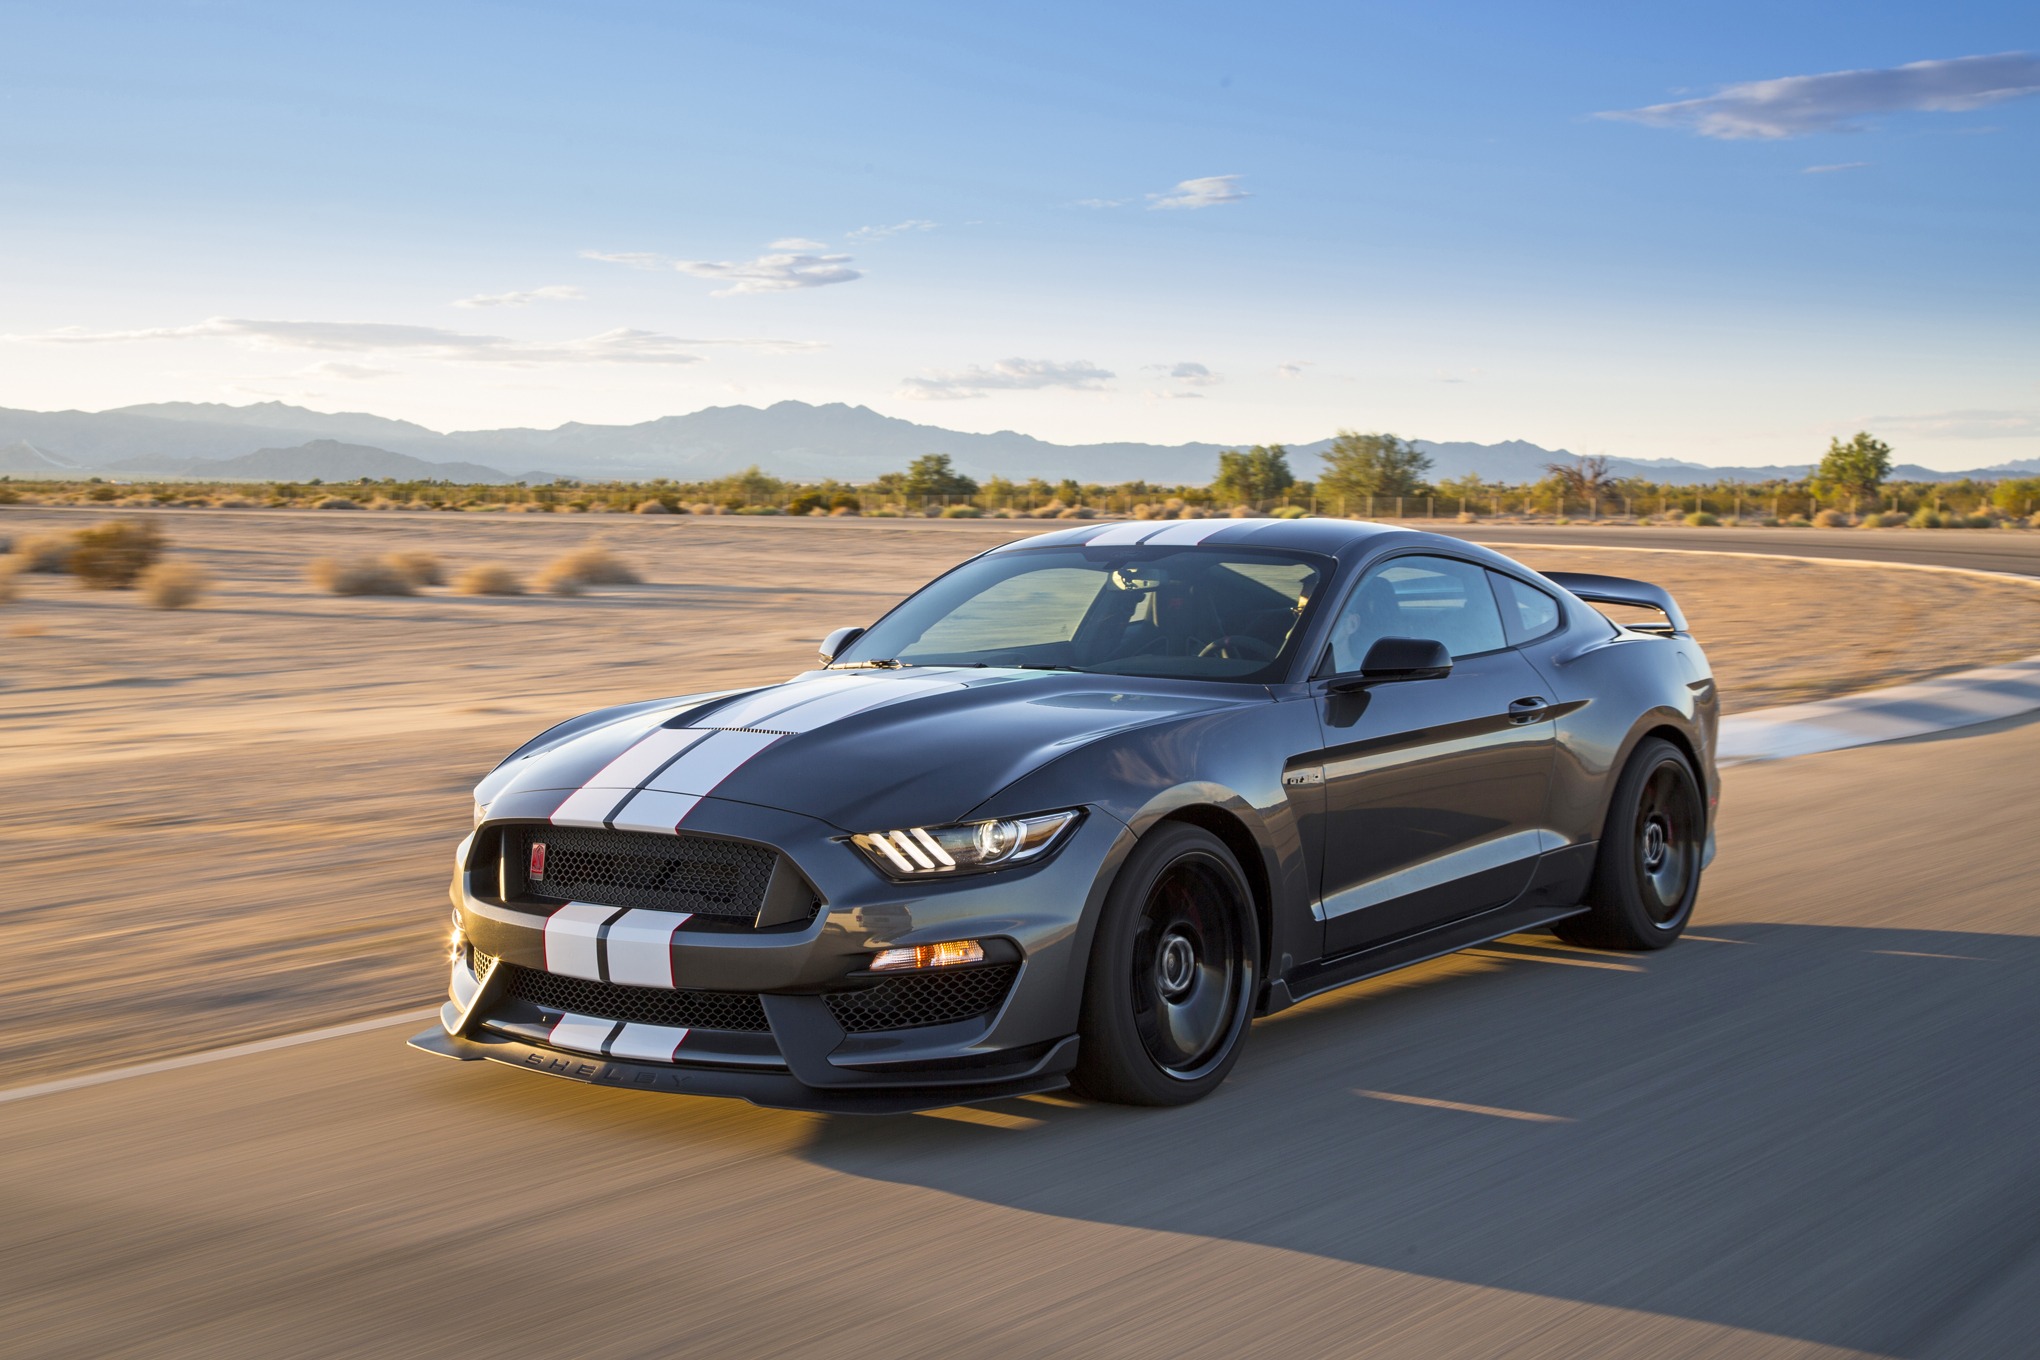 2015 chevrolet camaro z 28 vs 2016 ford shelby gt350r mustang head